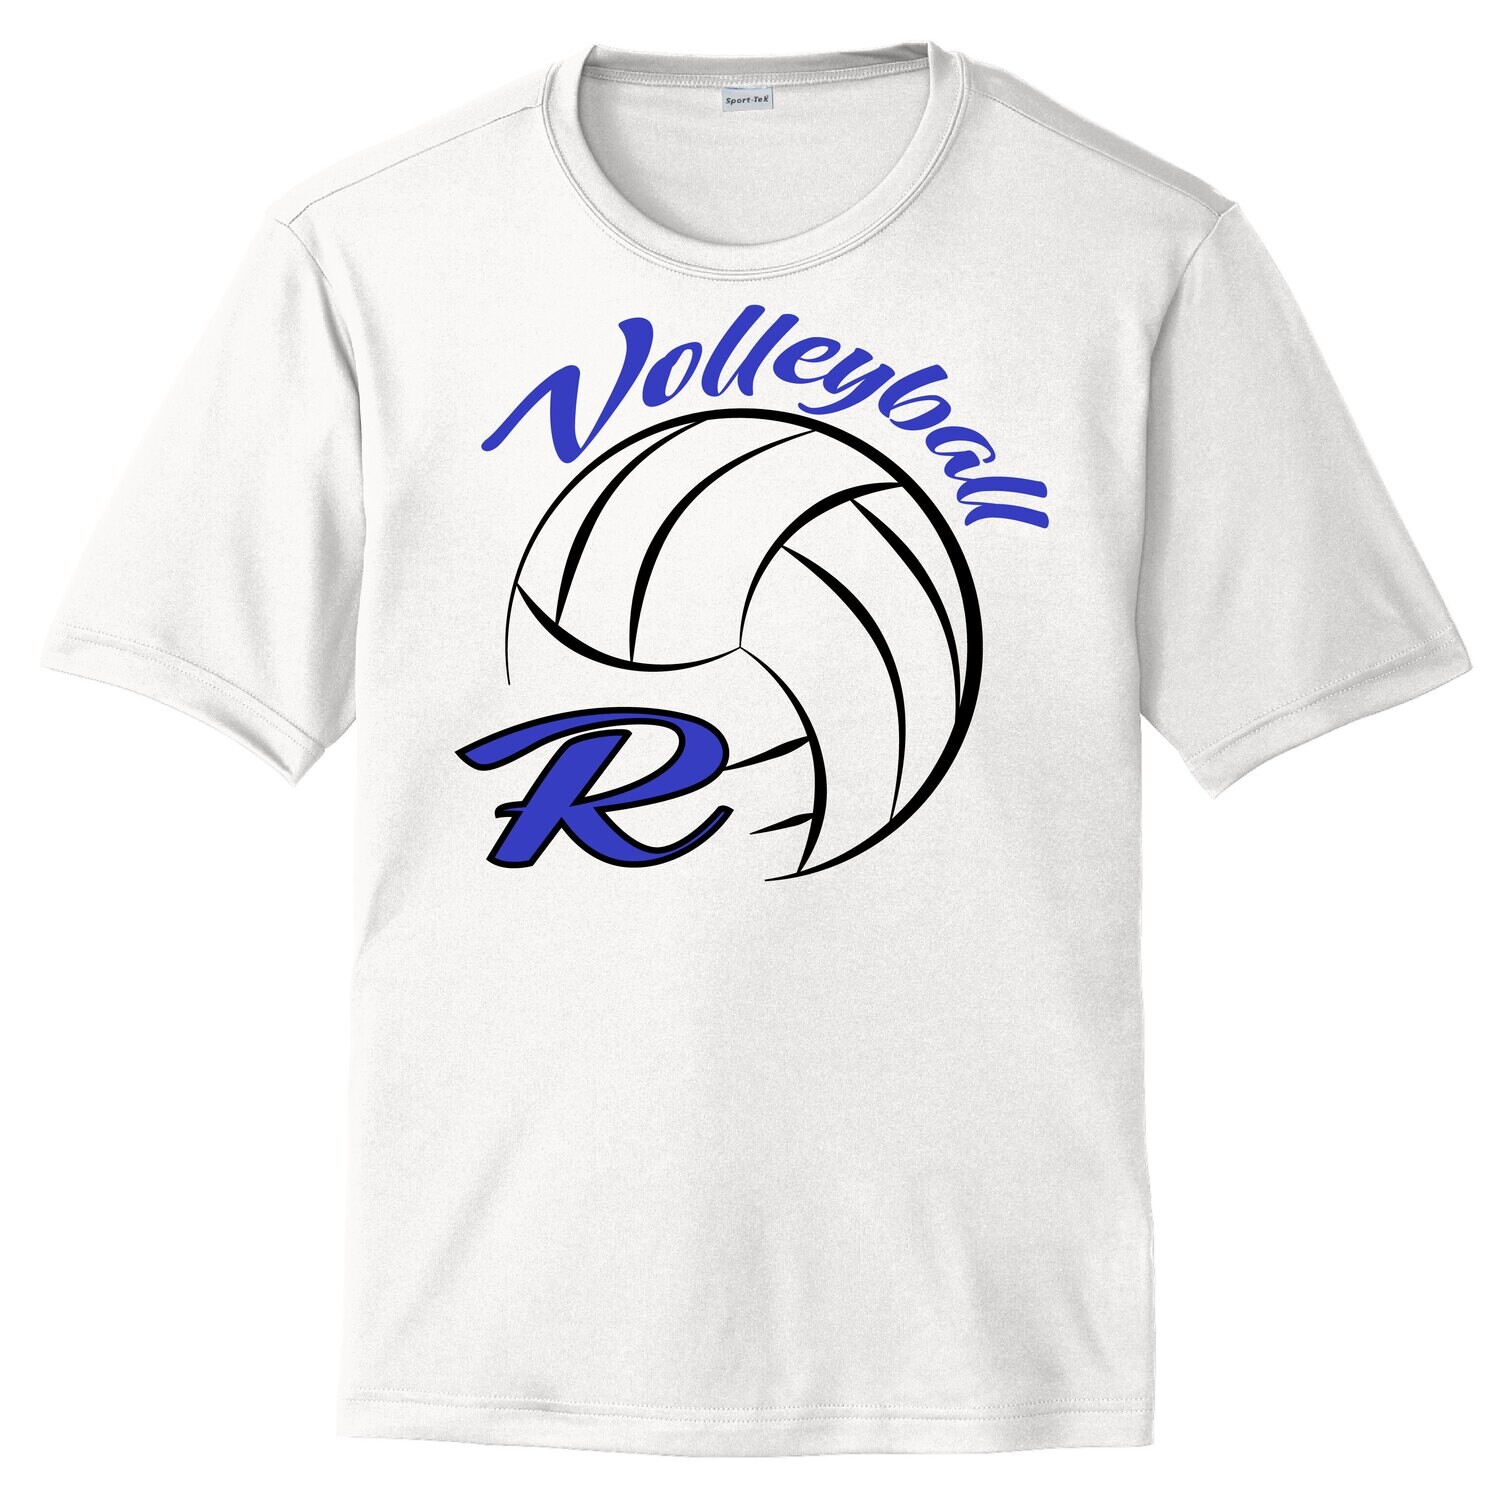 Sport-Tek® PosiCharge® Competitor™ Tee - R-Volley Logo